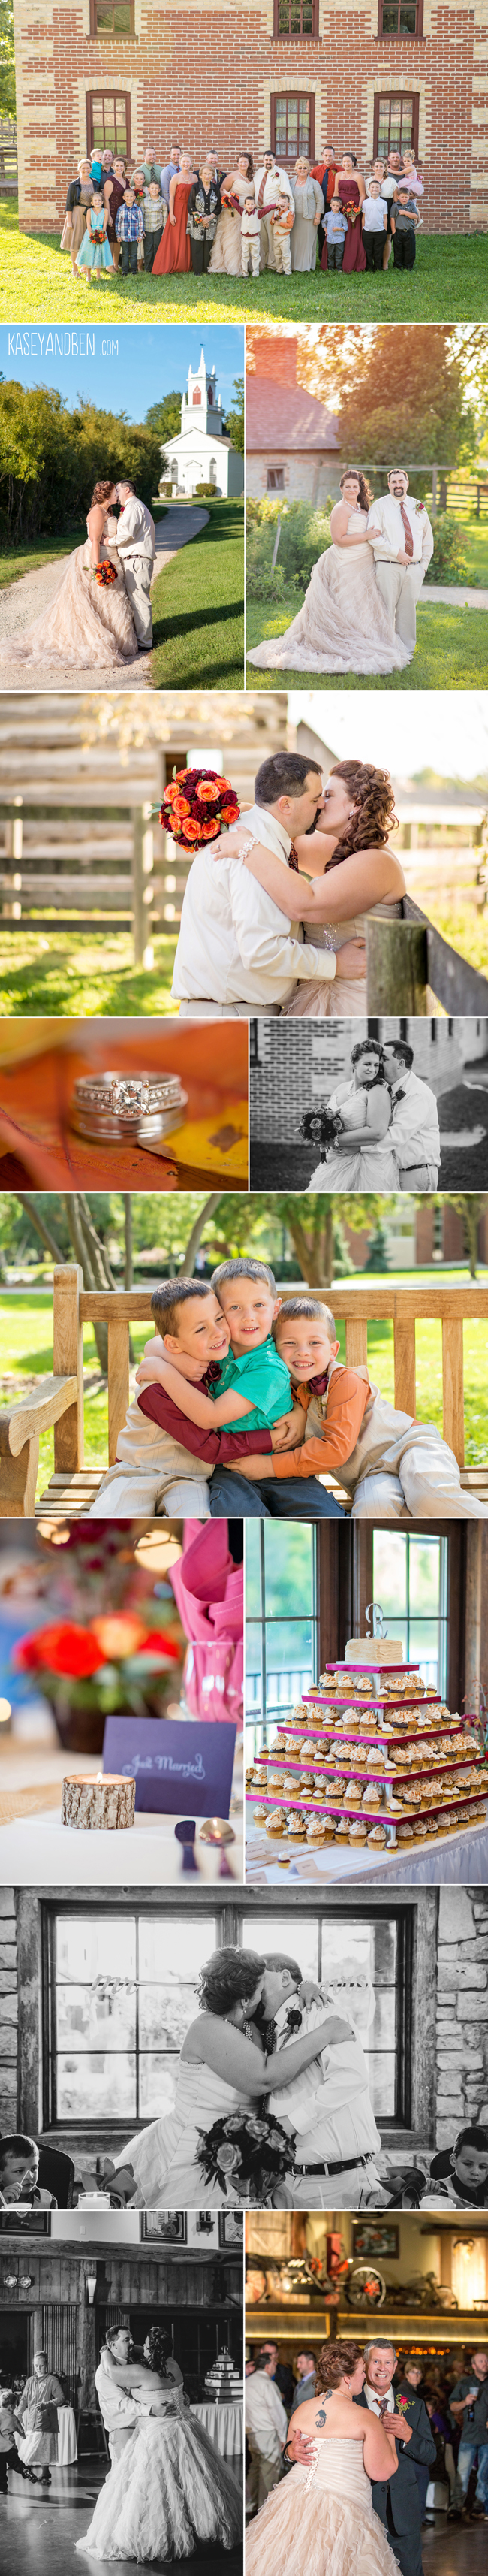 Heritage-Hill-Green-Bay-Wedding-Photographer-Olde-41-Vandervest-Photography-Kids-Fall-Wisconsin-Kasey-and-Ben-3